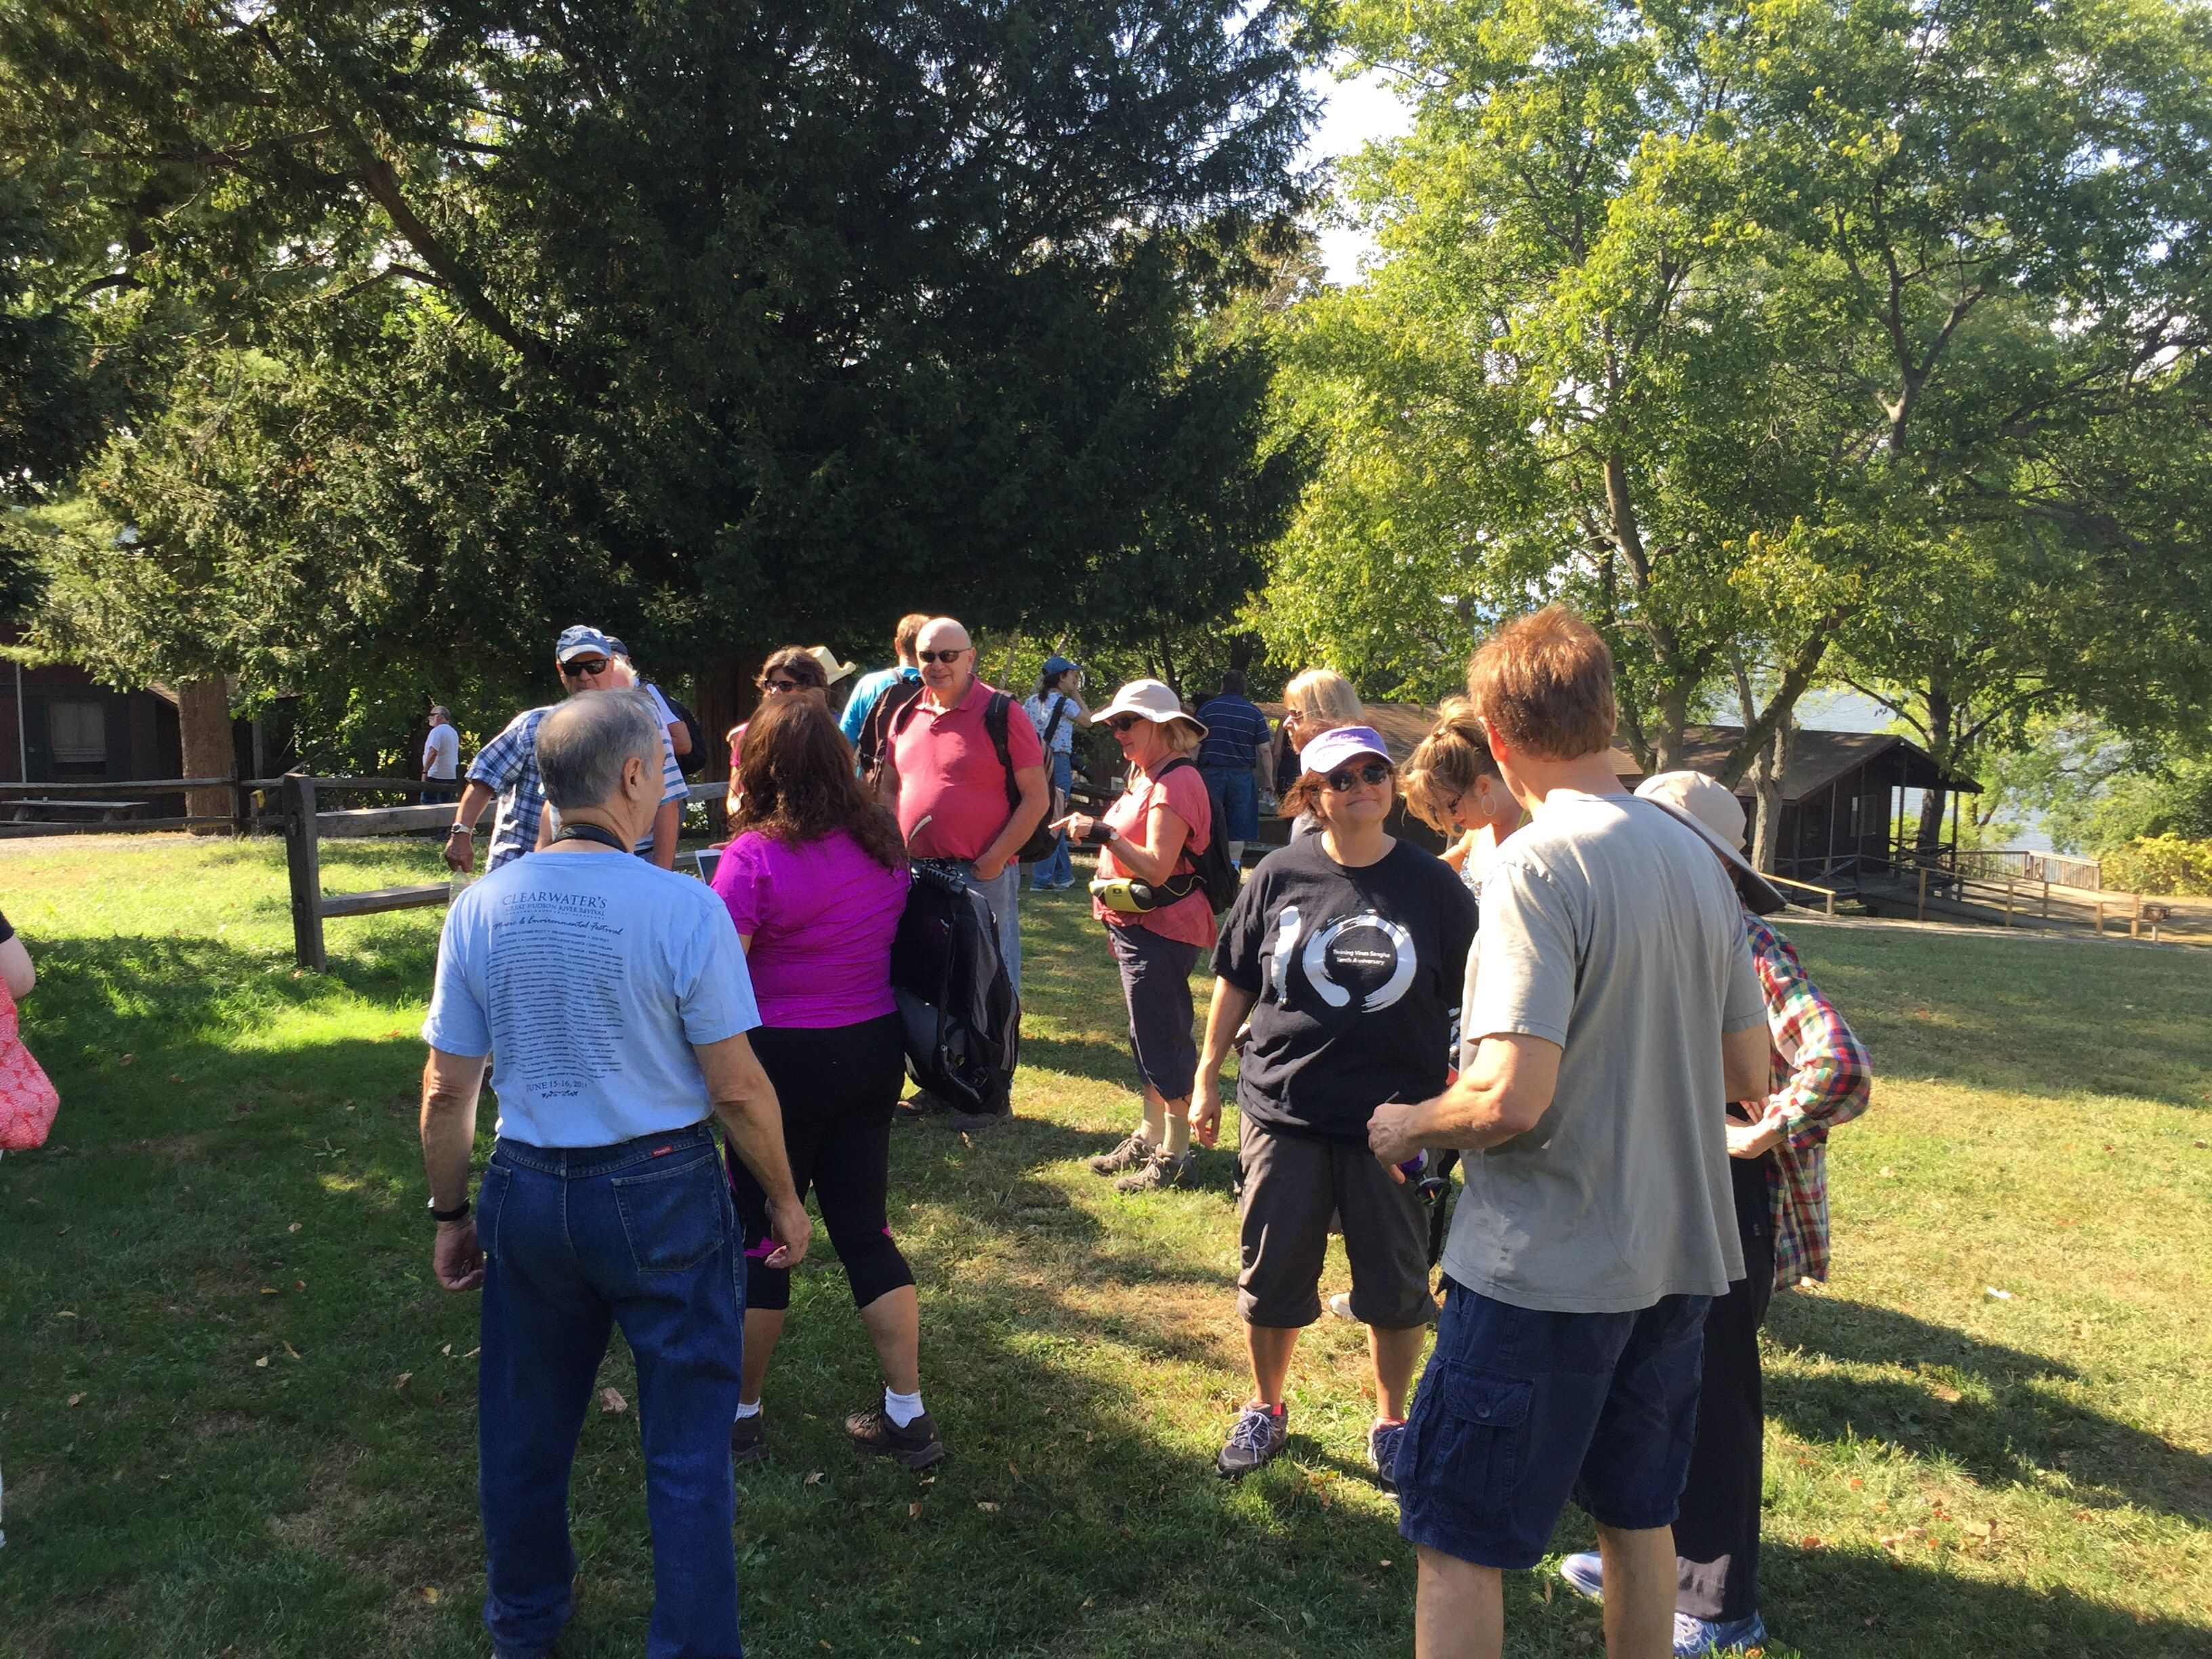 Singles meet up group rockland Over 50's groups in Rockland - Meetup